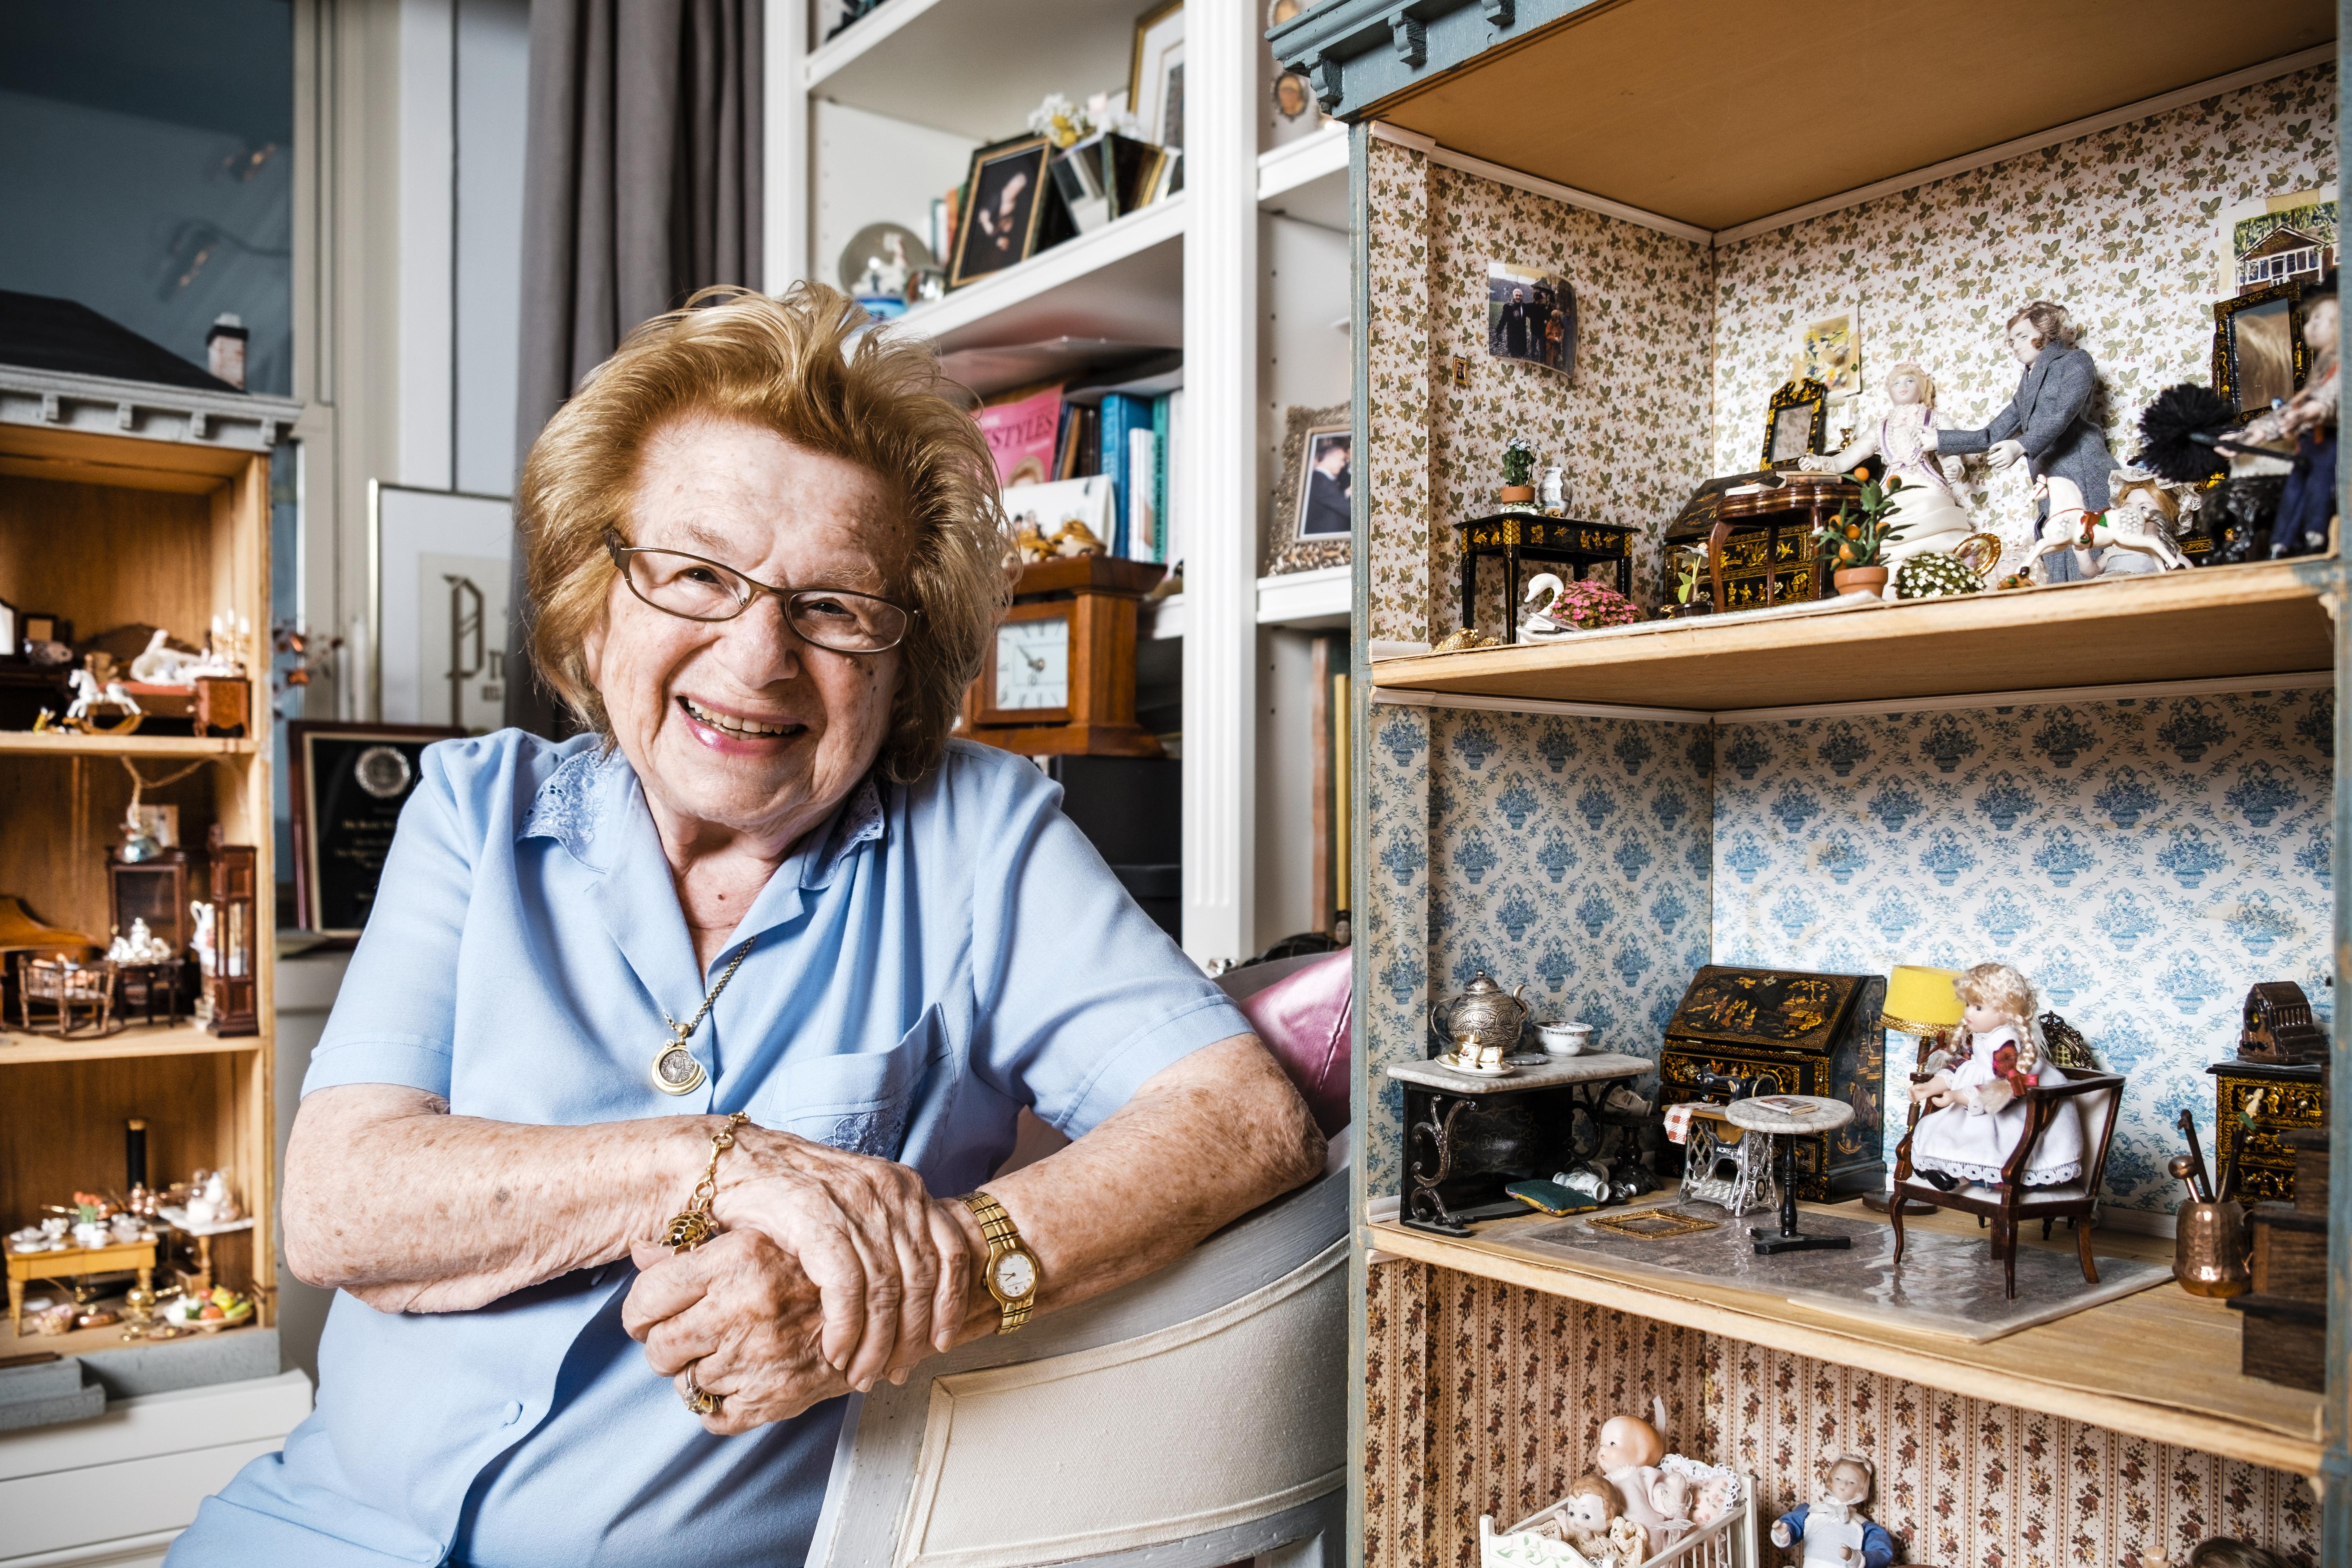 Dr Ruth Westheimer Poses In Front The Dollhouses She Has Collected Over Past 20